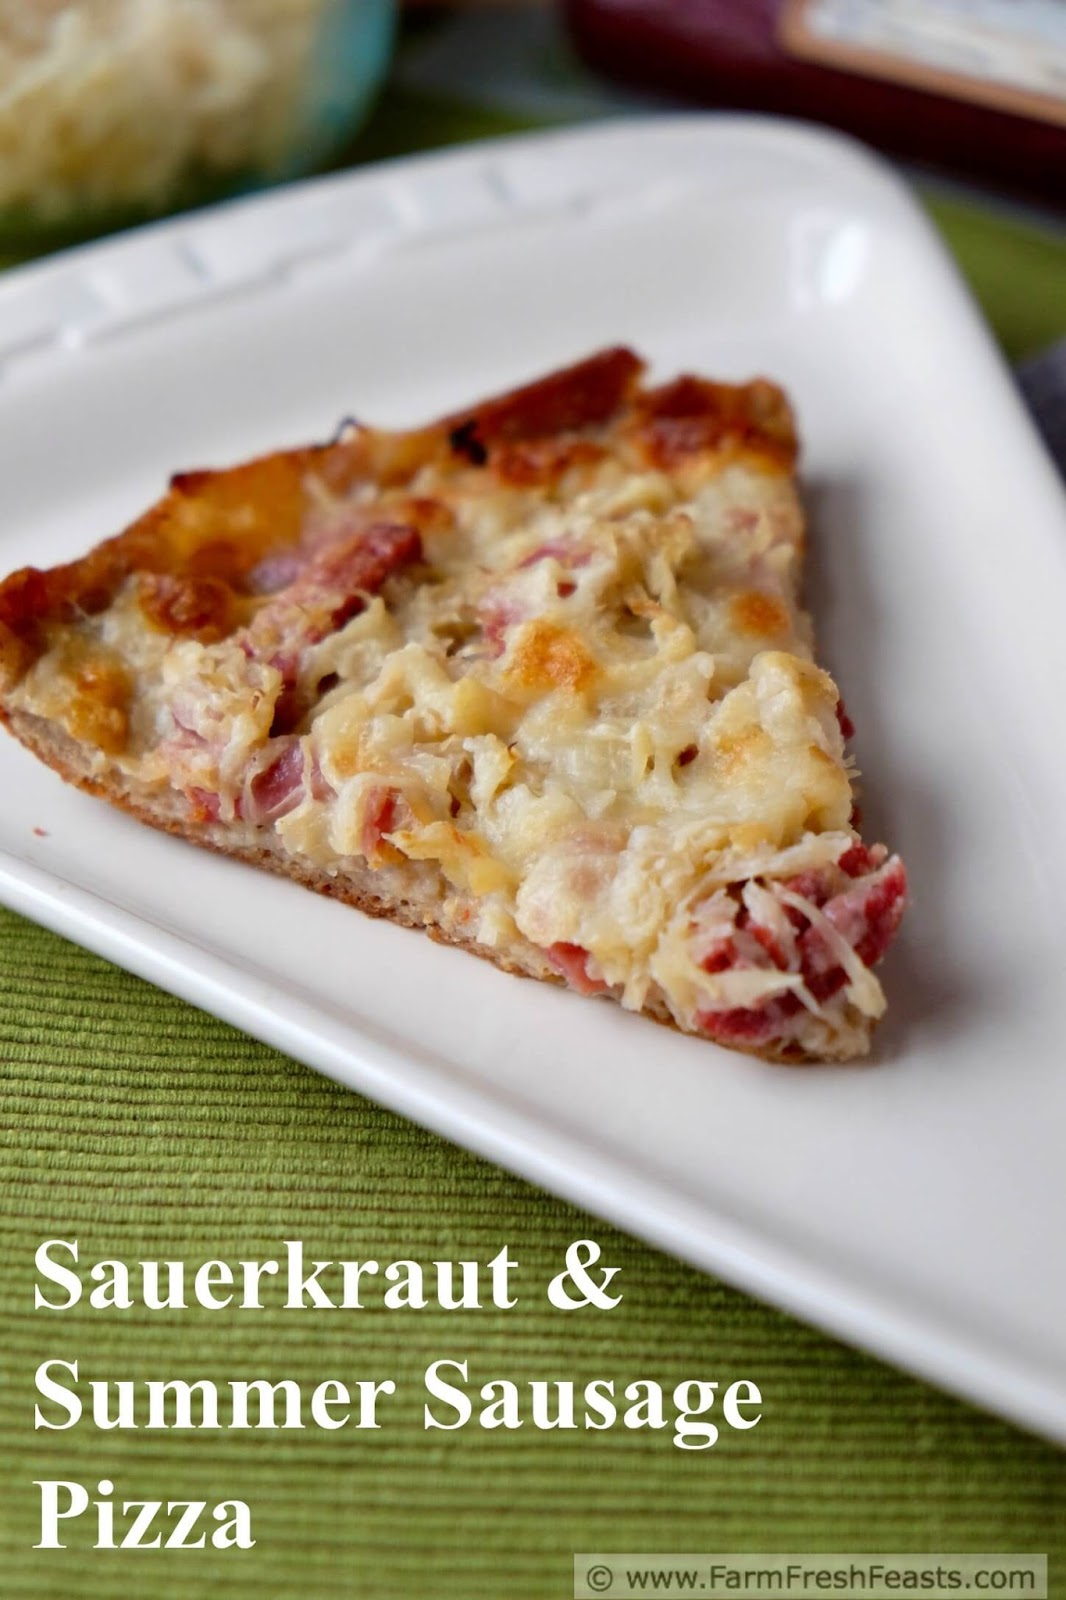 sauerkraut how to take it for ibs